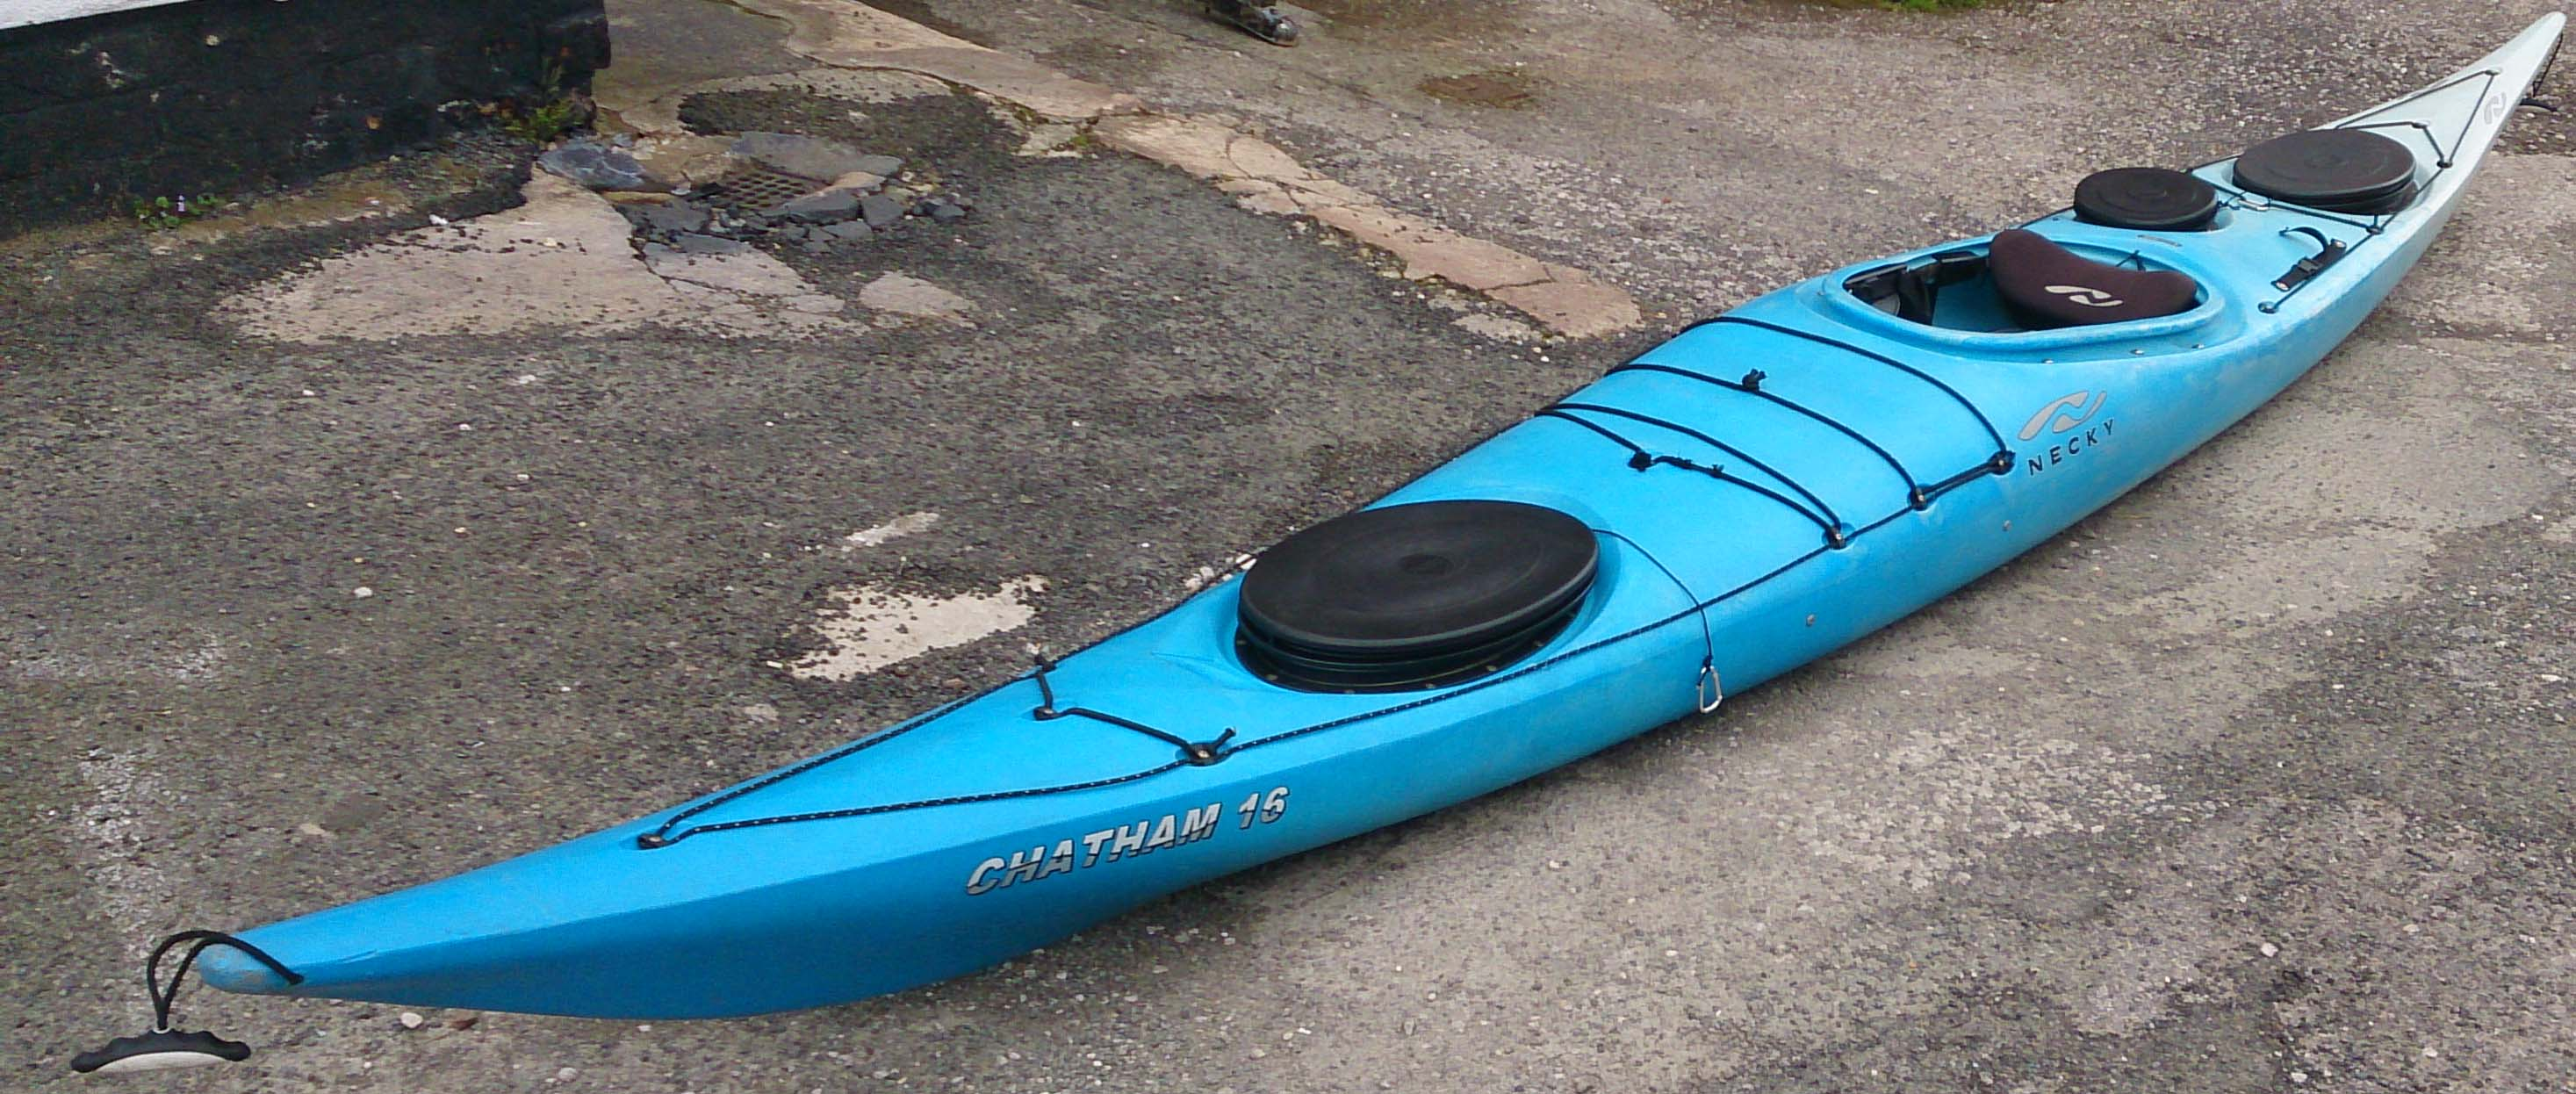 For Sale Necky Chatham 16 Polymer Sea Kayak